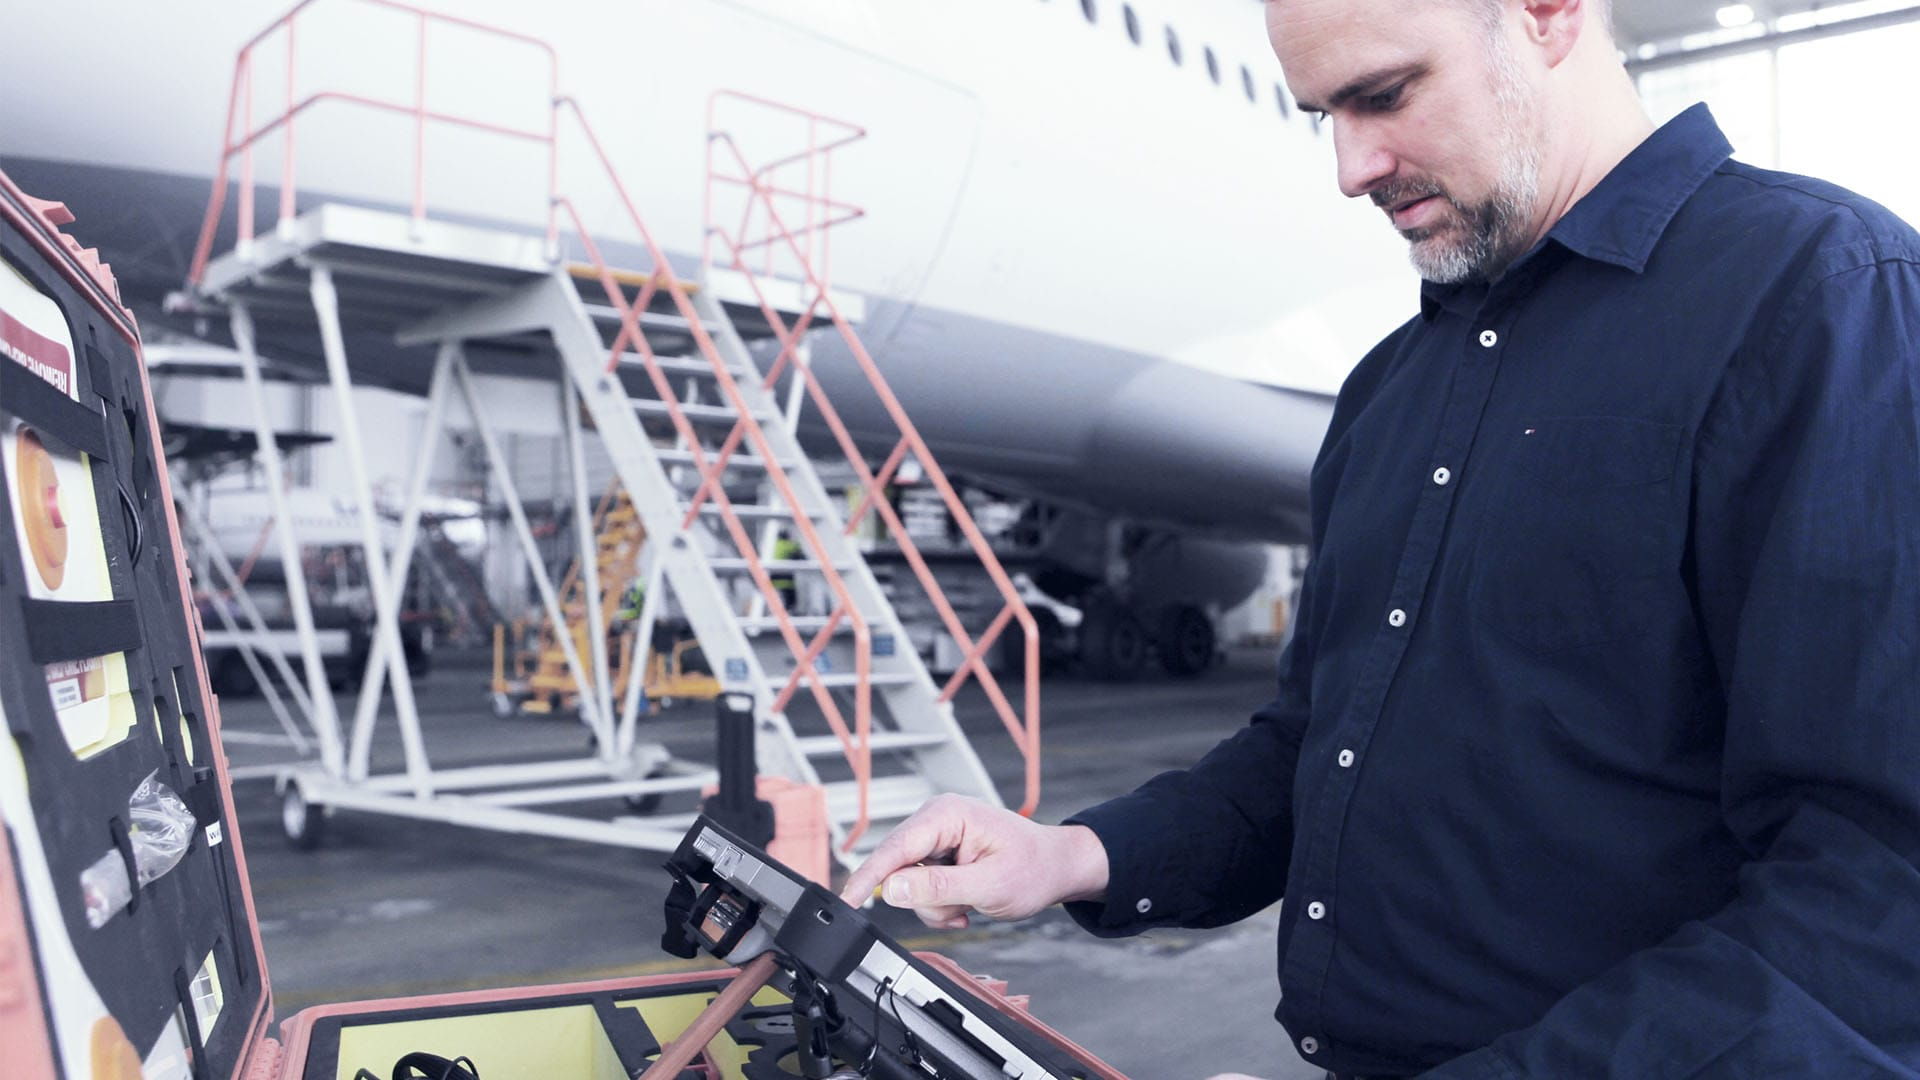 Thorsten Koch test a new equipment on a A350 aircraft